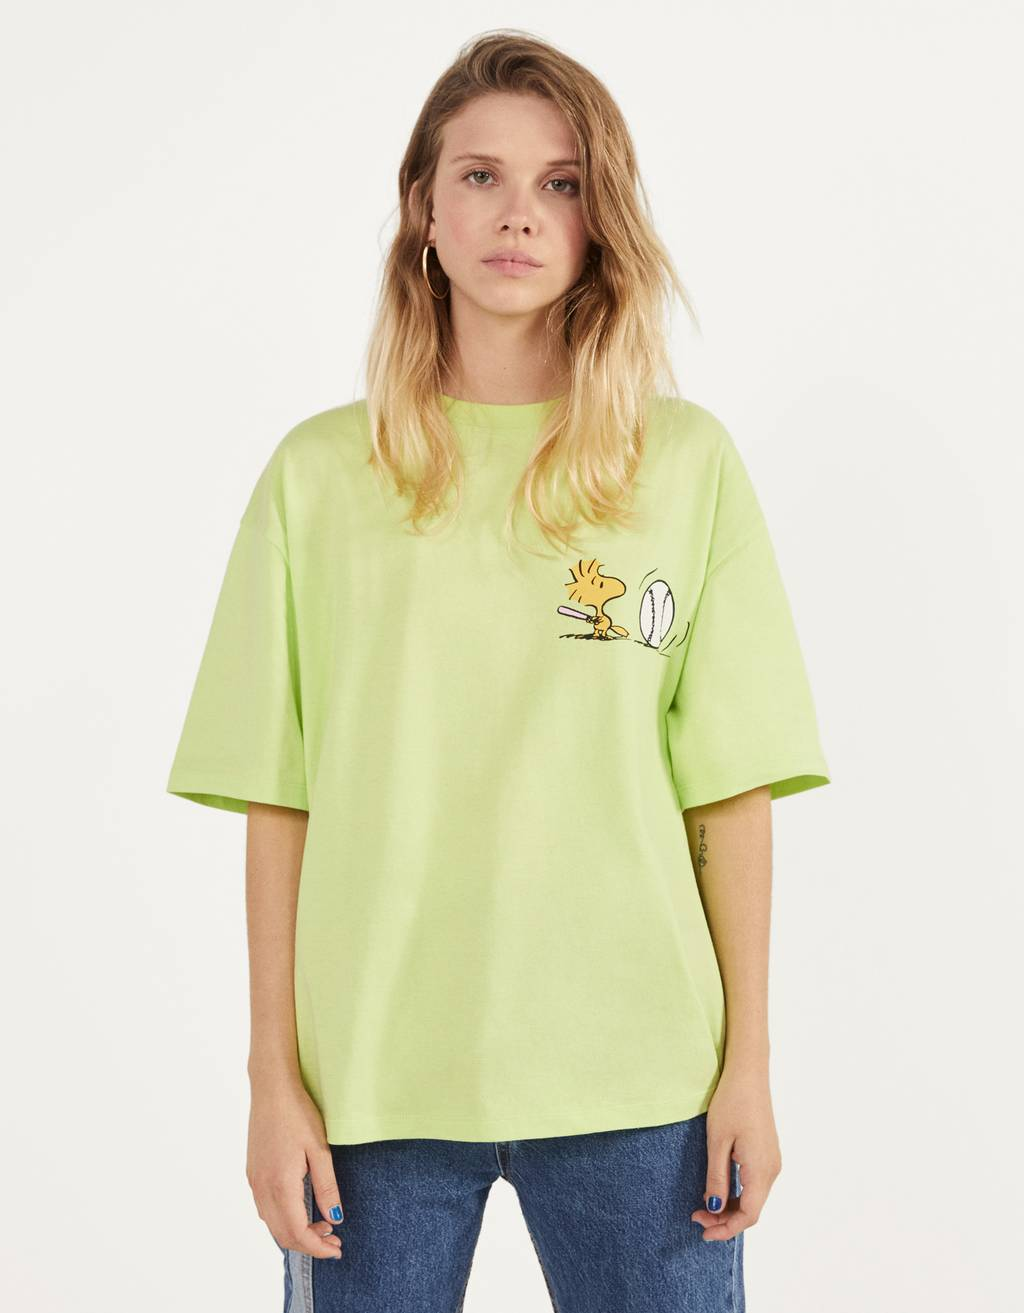 Oversized Snoopy T-shirt